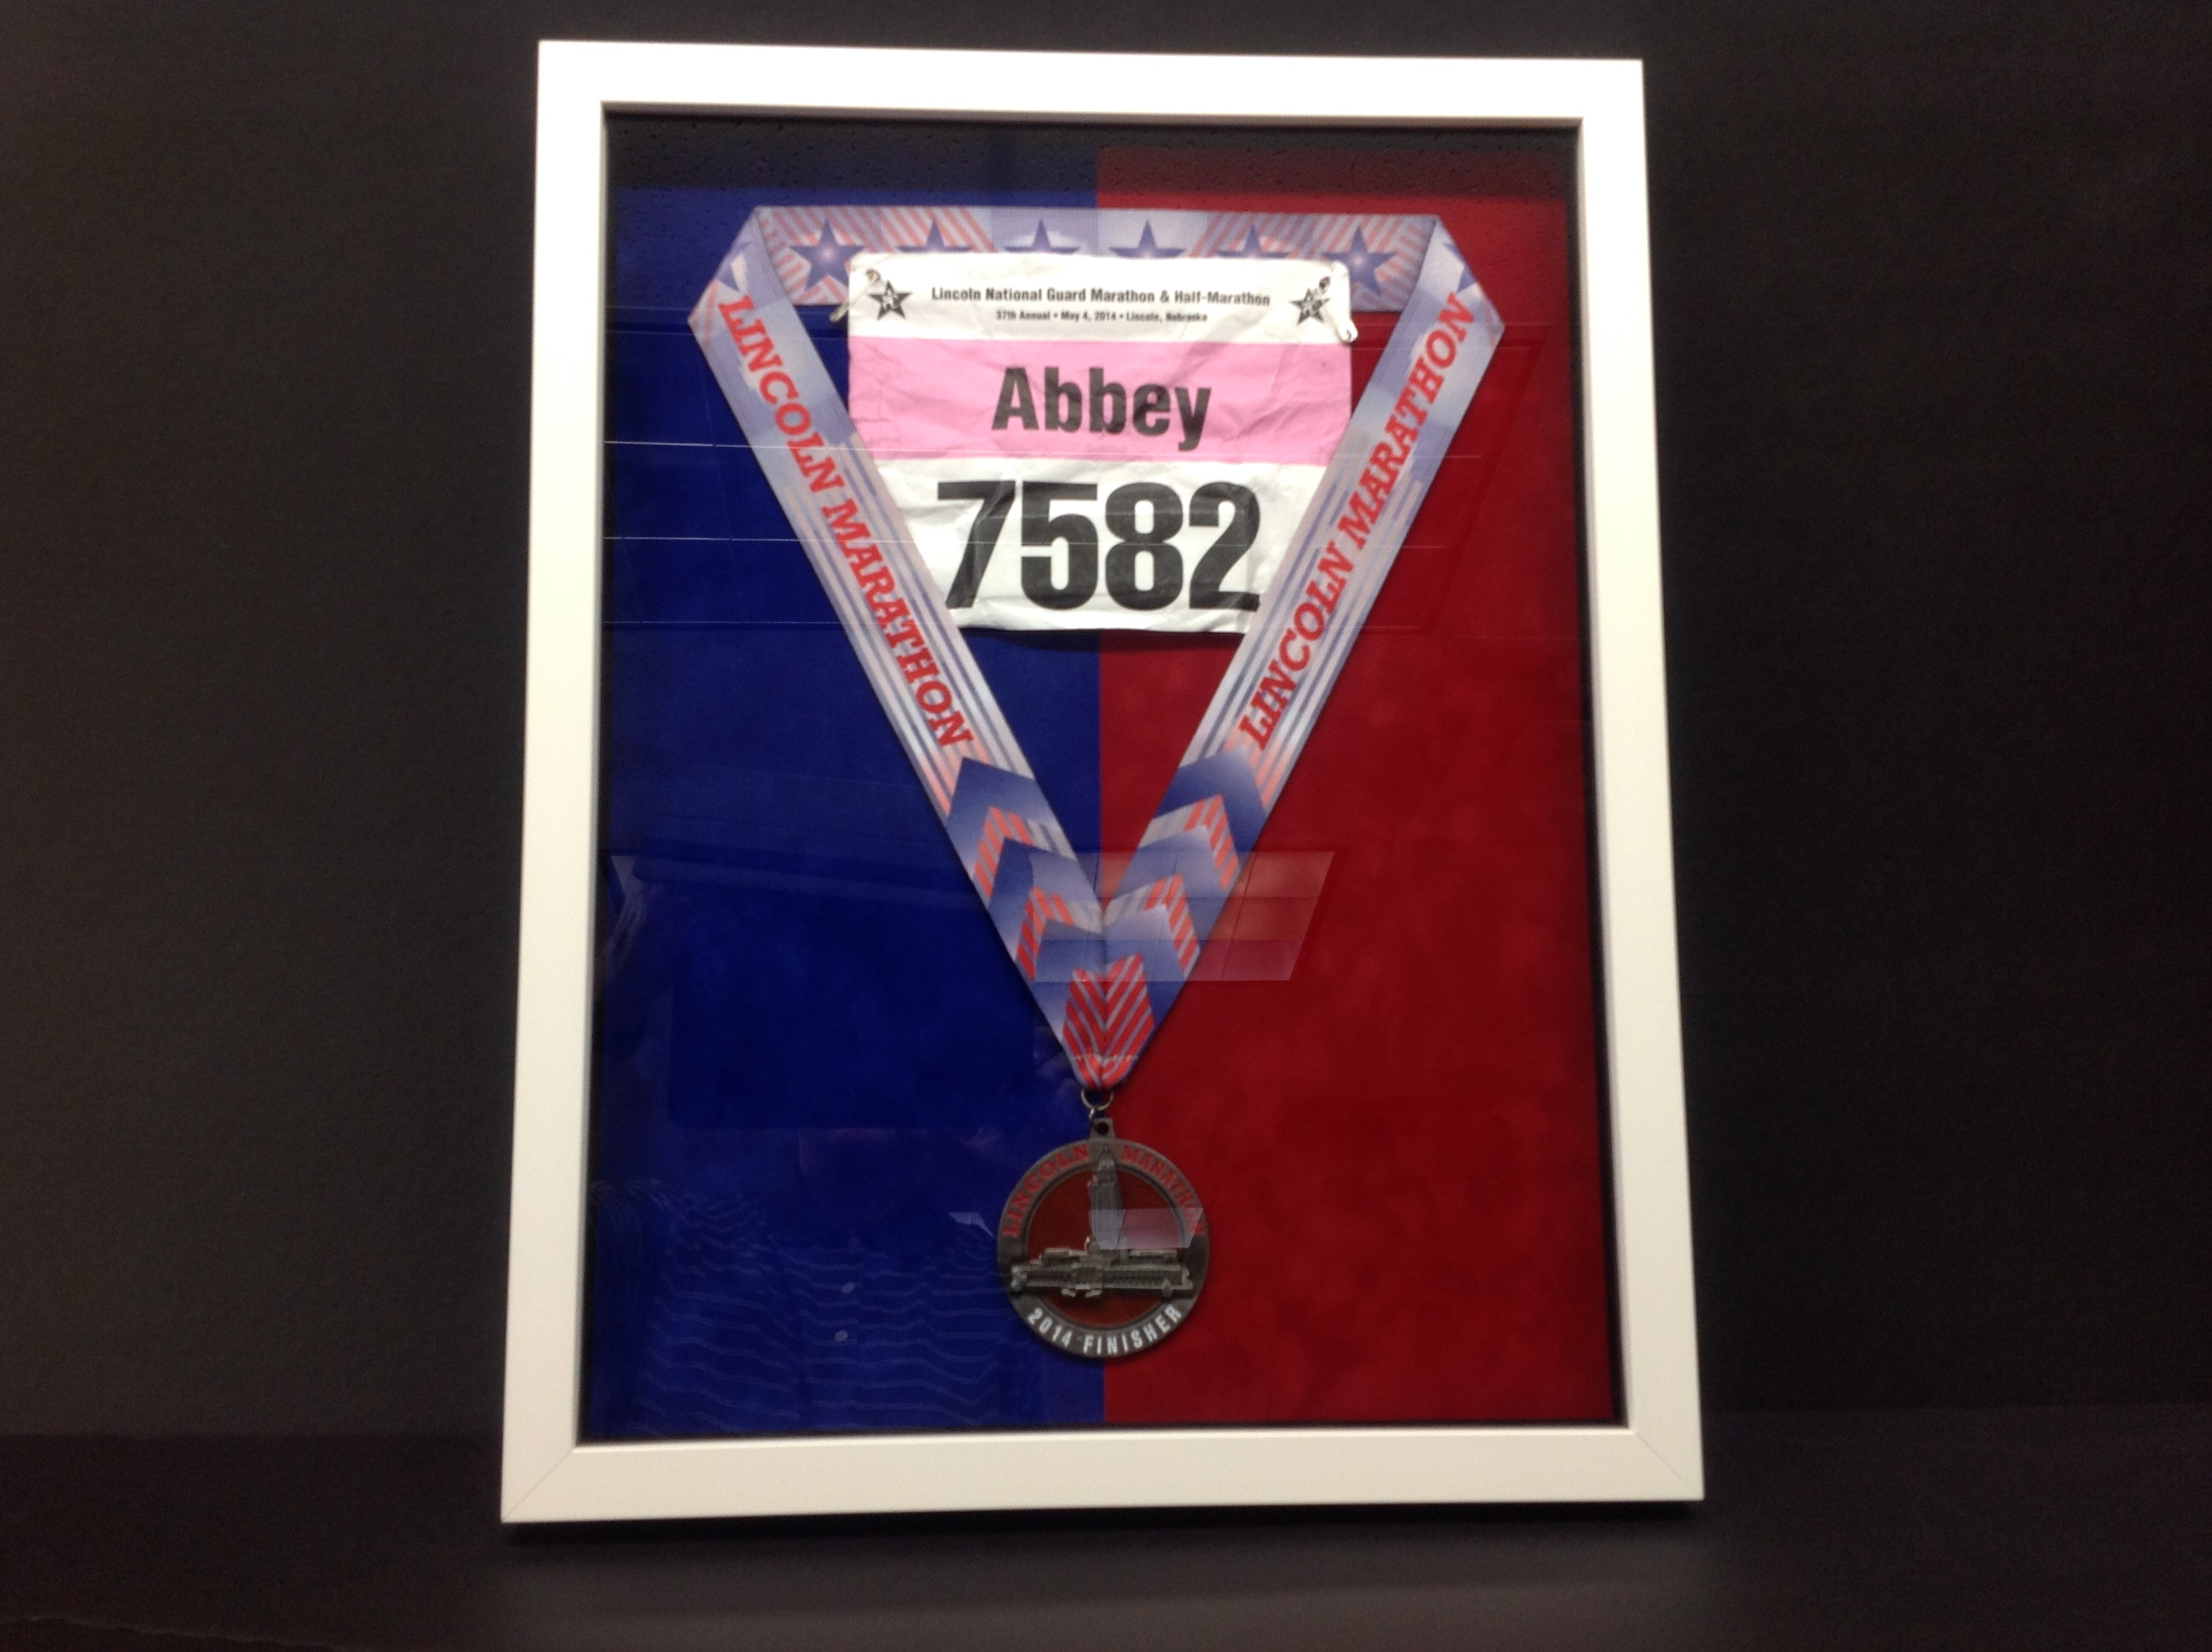 FRAME YOUR RACE MEDALS OR RACING BIBS